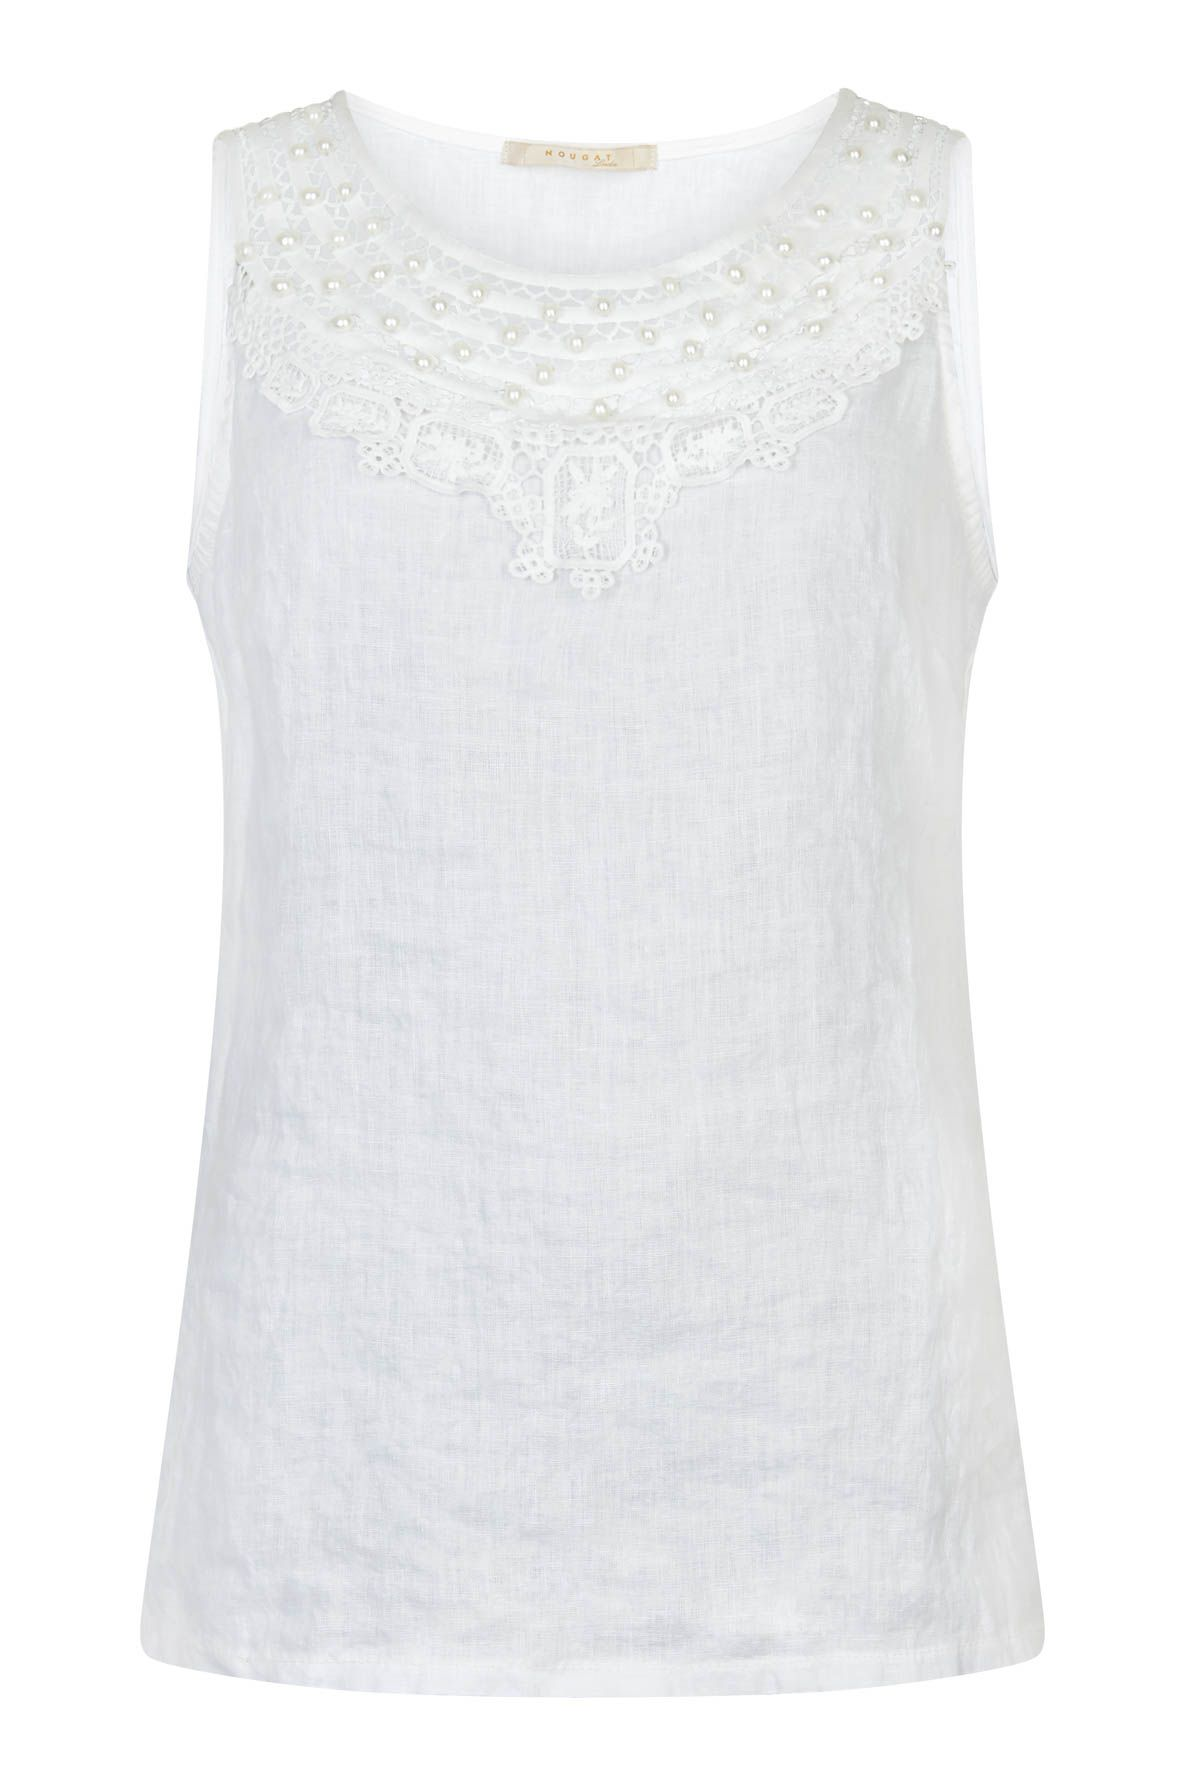 Nougat London Tiger Lily Crochet Vest, White